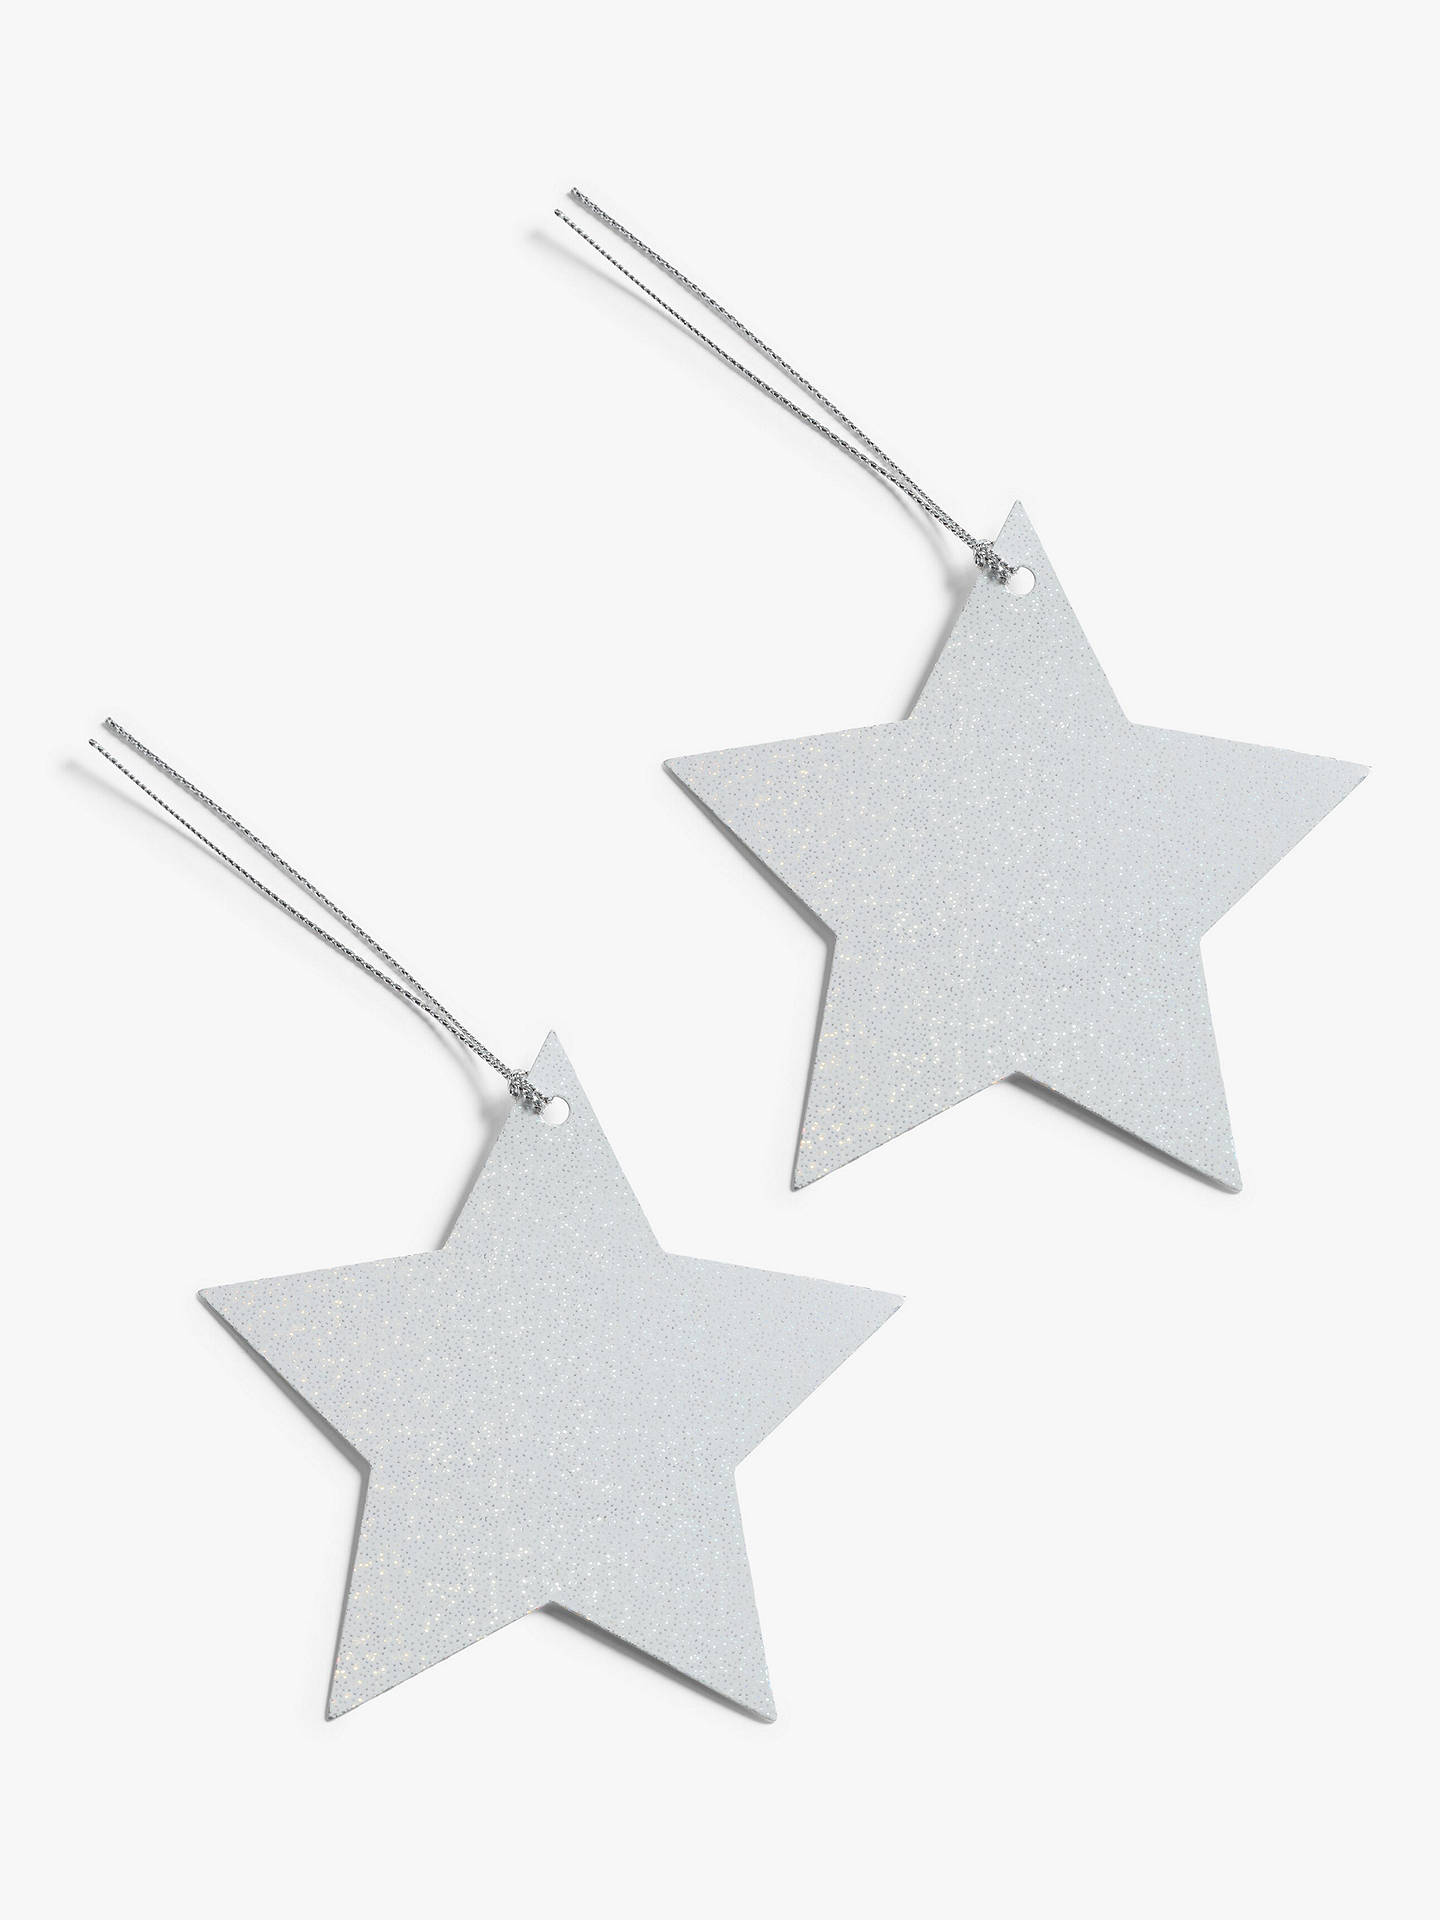 Buy John Lewis & Partners Impressionism Star Gift Tags, Pack of 10, Silver, bundle of 2 Online at johnlewis.com